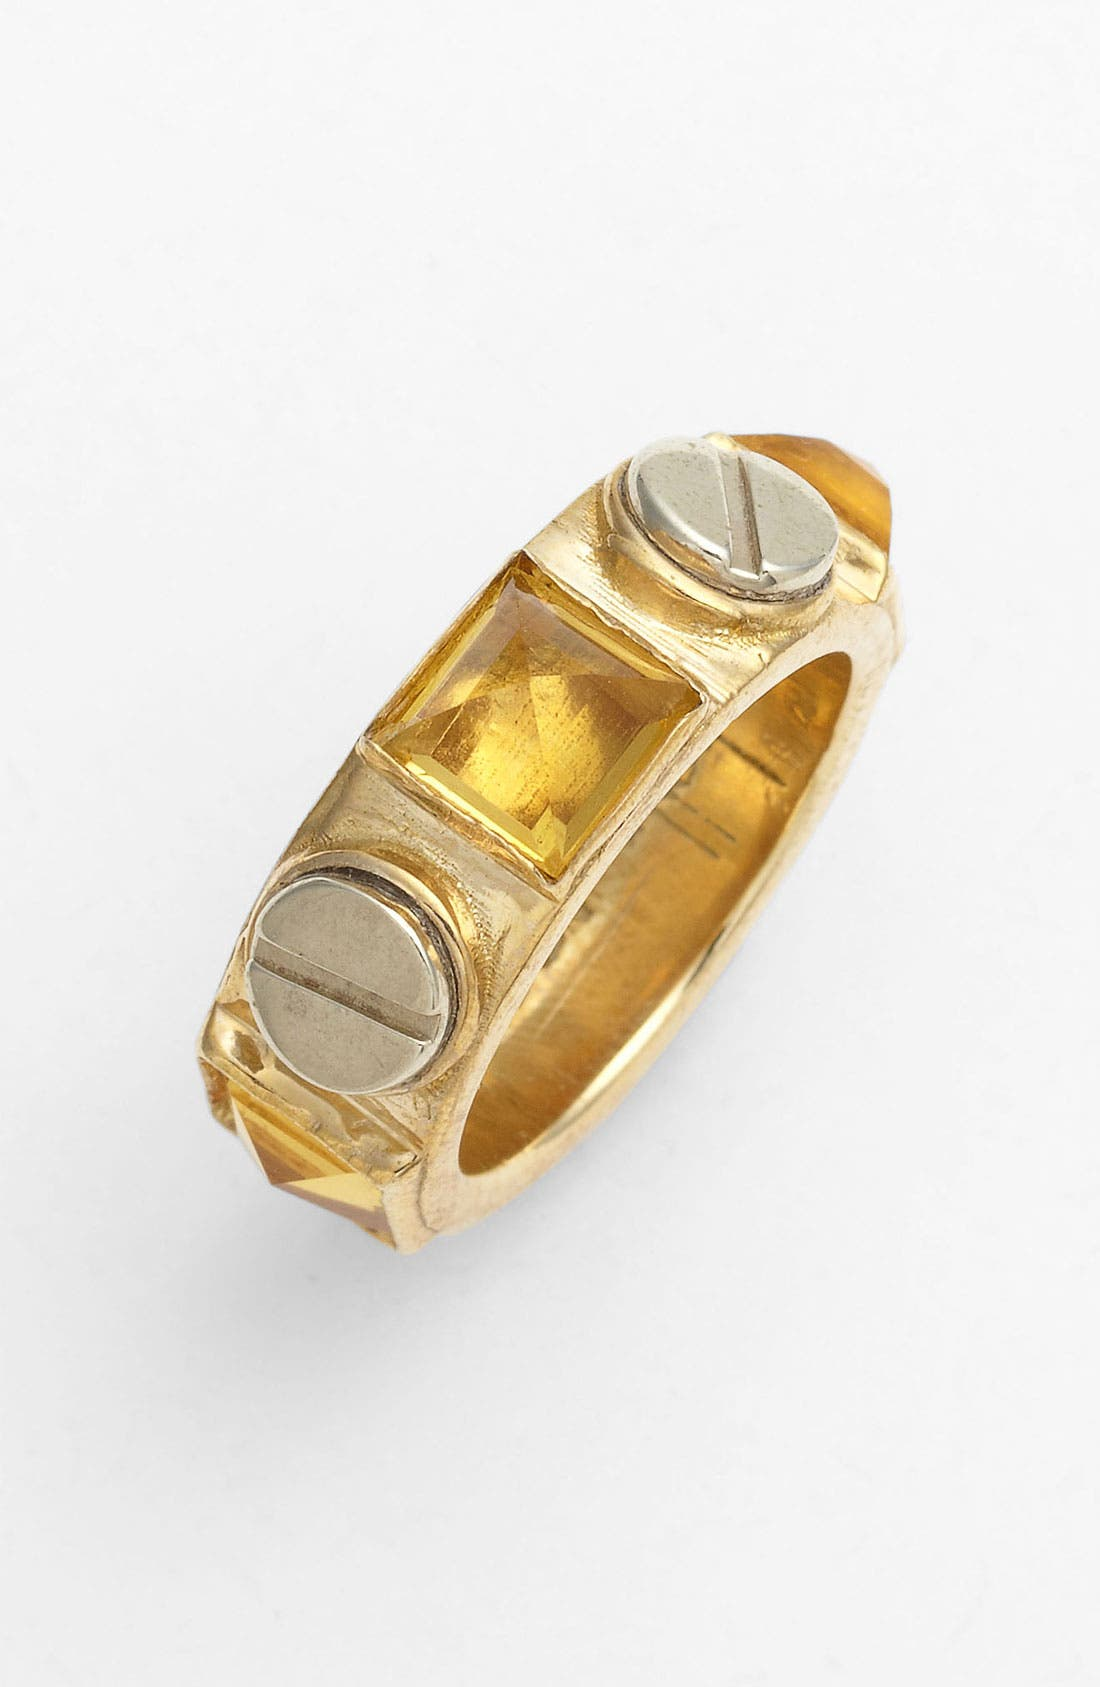 Main Image - Kelly Wearstler Screw & Faceted Stone Ring